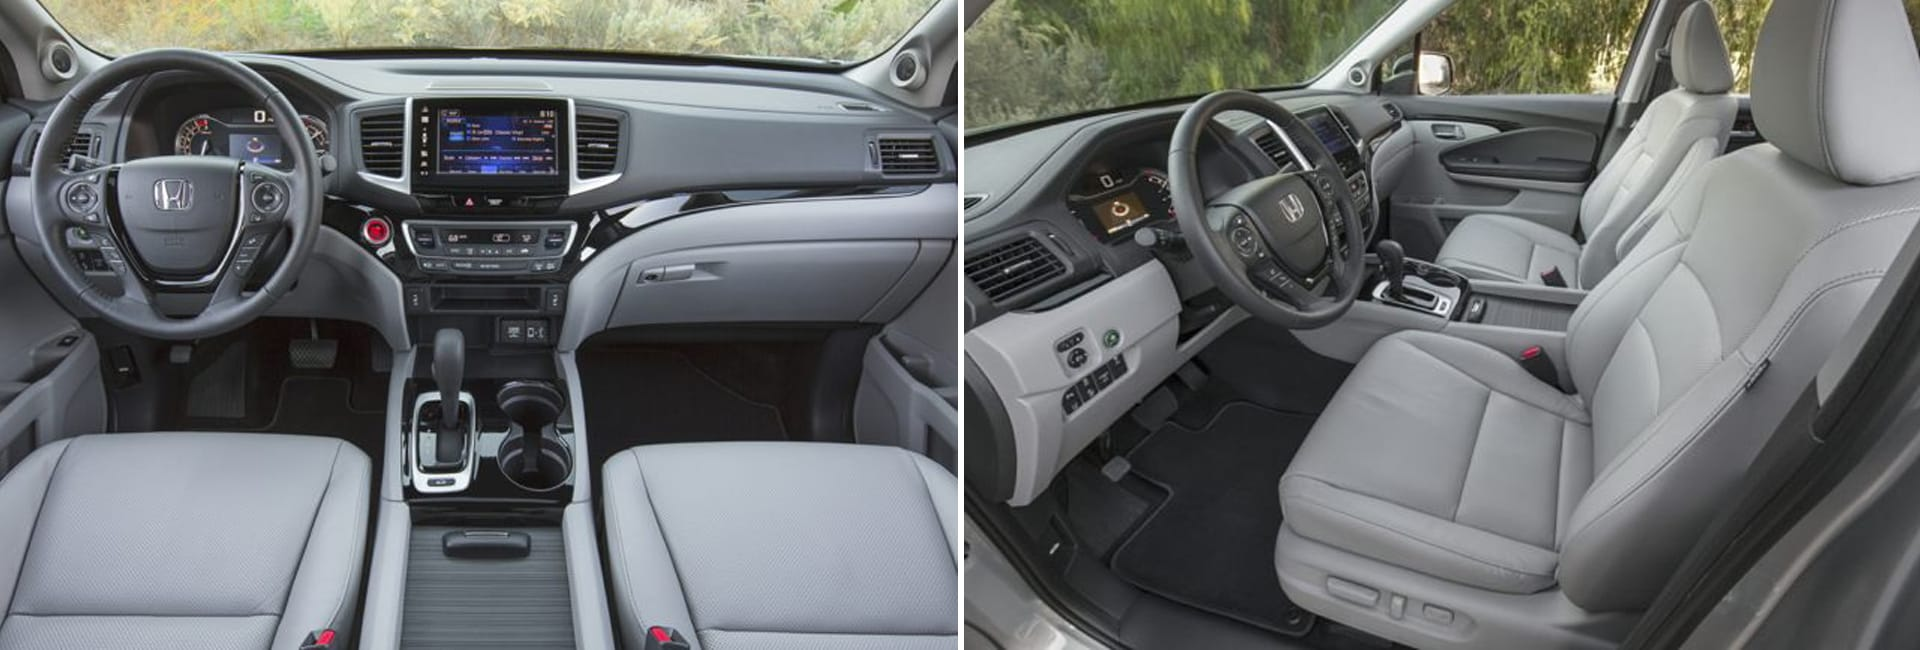 Honda Ridgeline Interior Vehicle Features